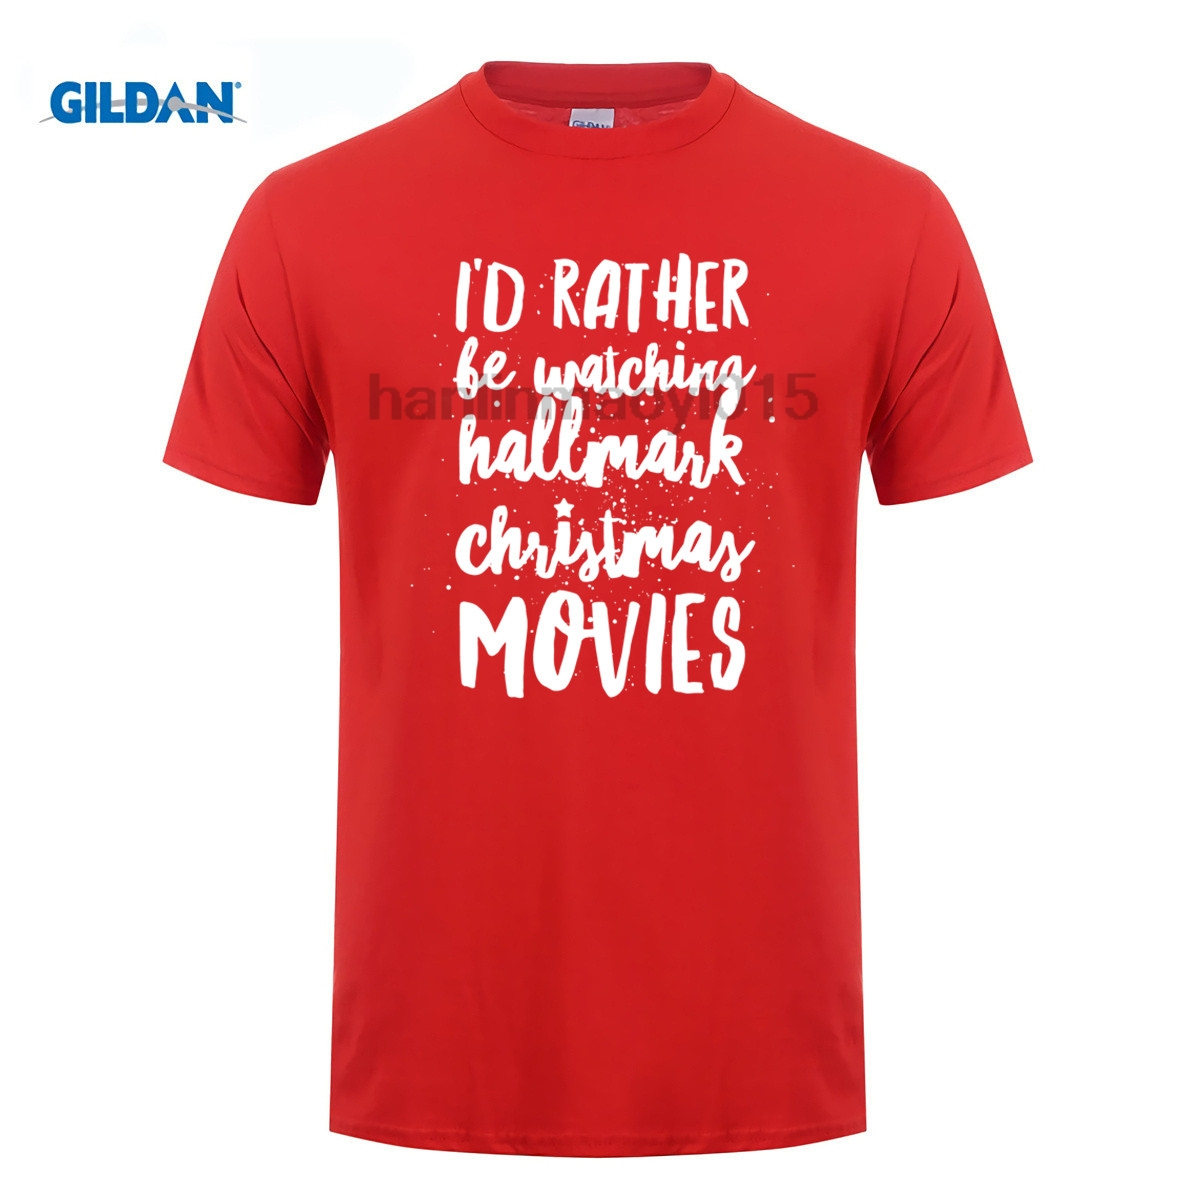 GILDAN 100% cotton O-neck printed T-shirt Hallmark Christmas Movies T-Shirt